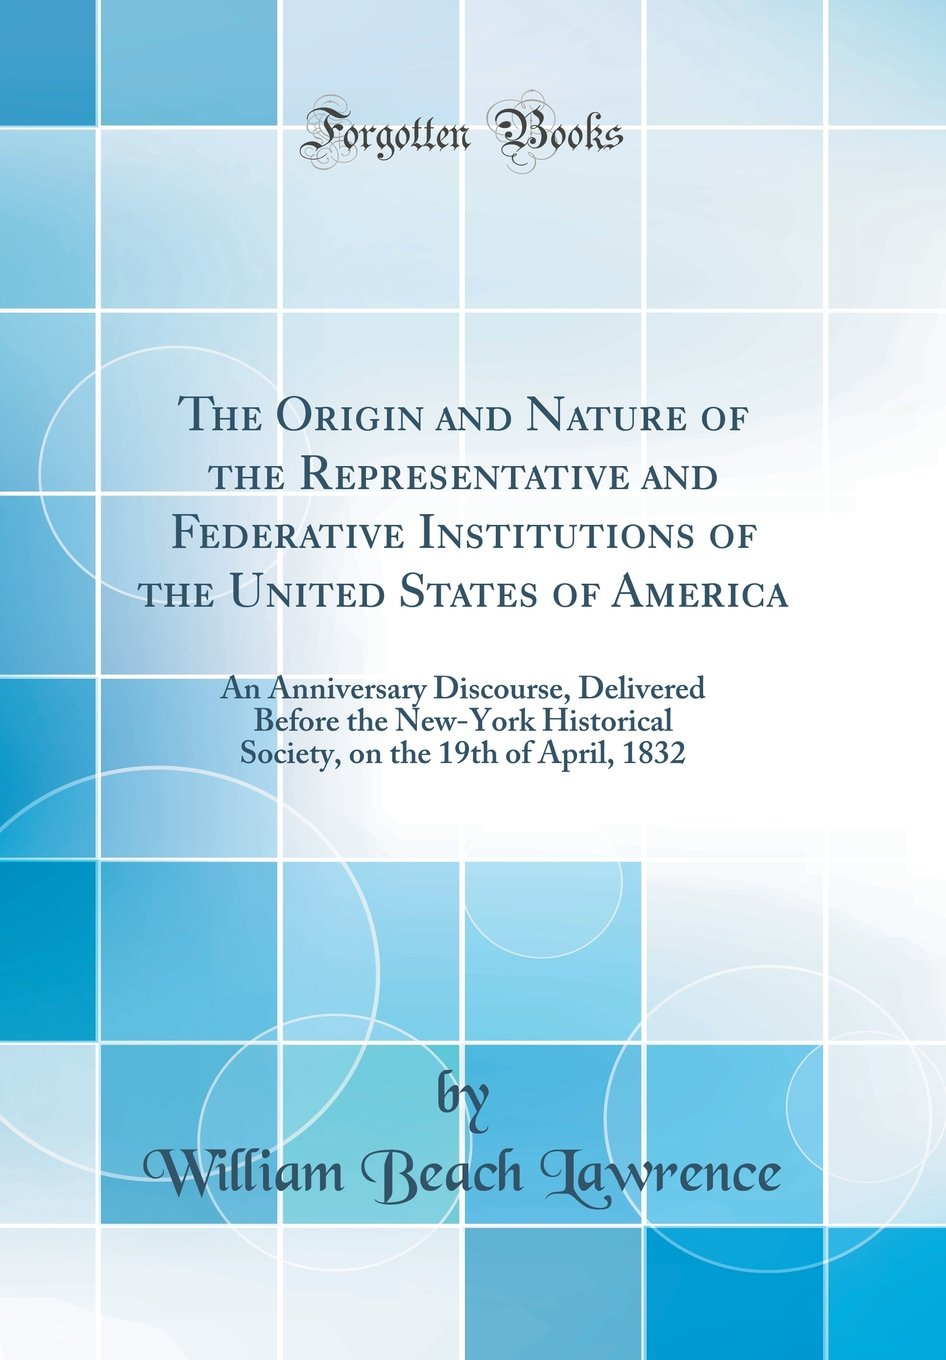 Download The Origin and Nature of the Representative and Federative Institutions of the United States of America: An Anniversary Discourse, Delivered Before ... on the 19th of April, 1832 (Classic Reprint) PDF